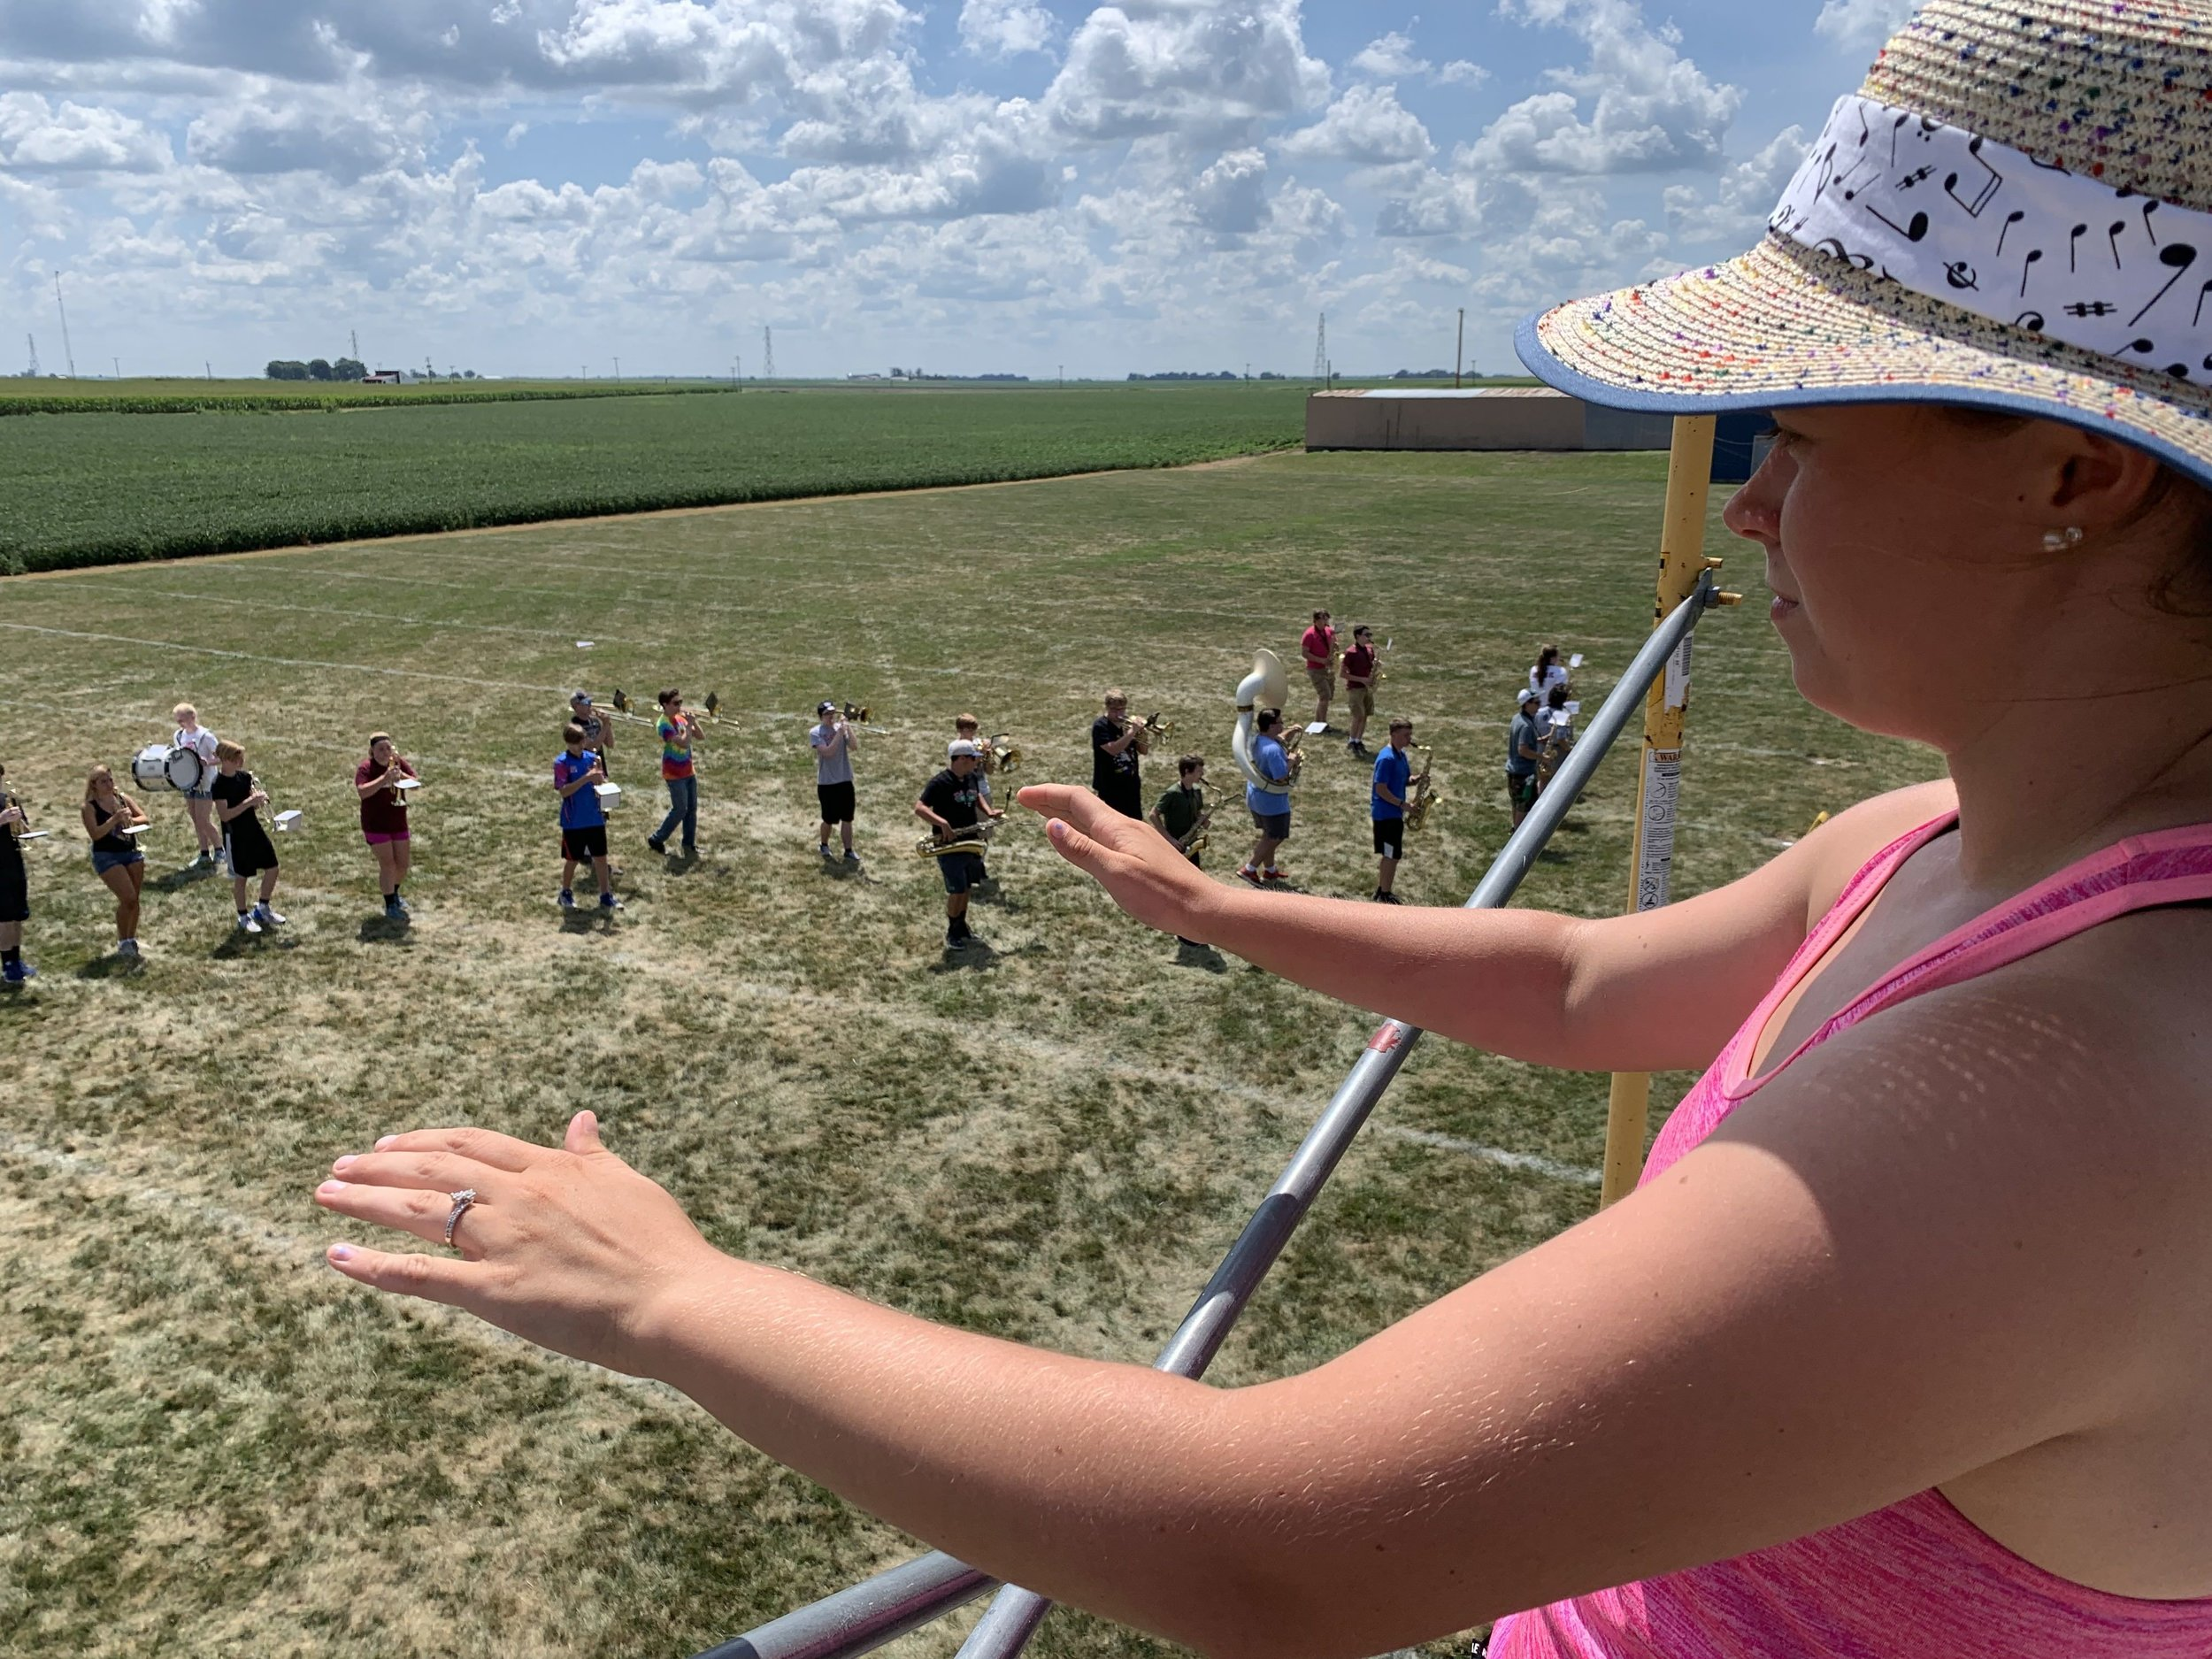 Drum Major Sierra Centola conducts the band.